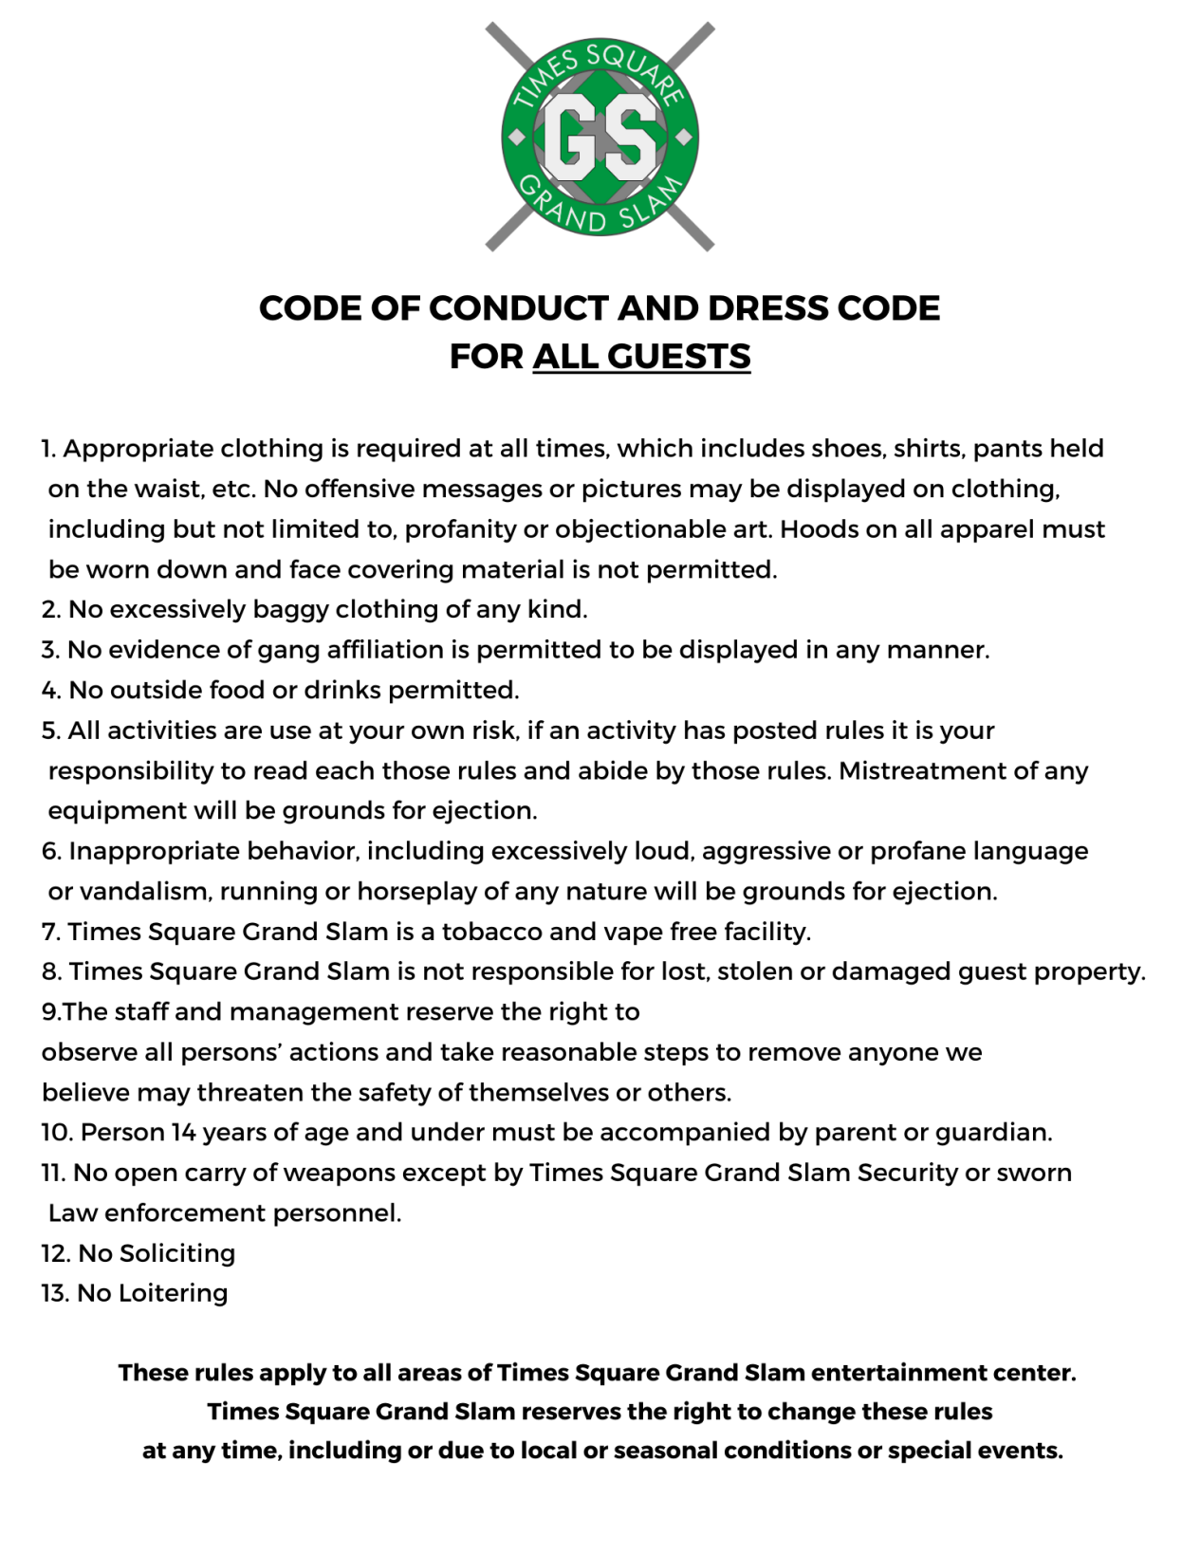 CODE OF CONDUCT .png